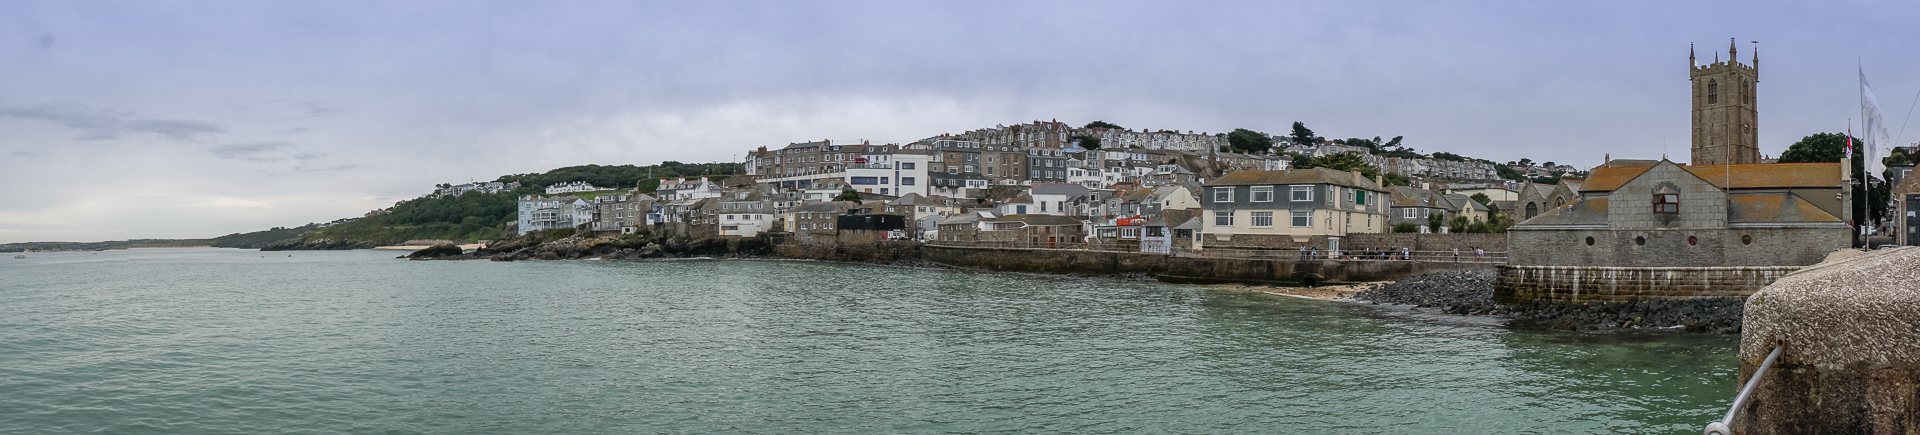 Panorama St. Ives mit St. Ia's Church